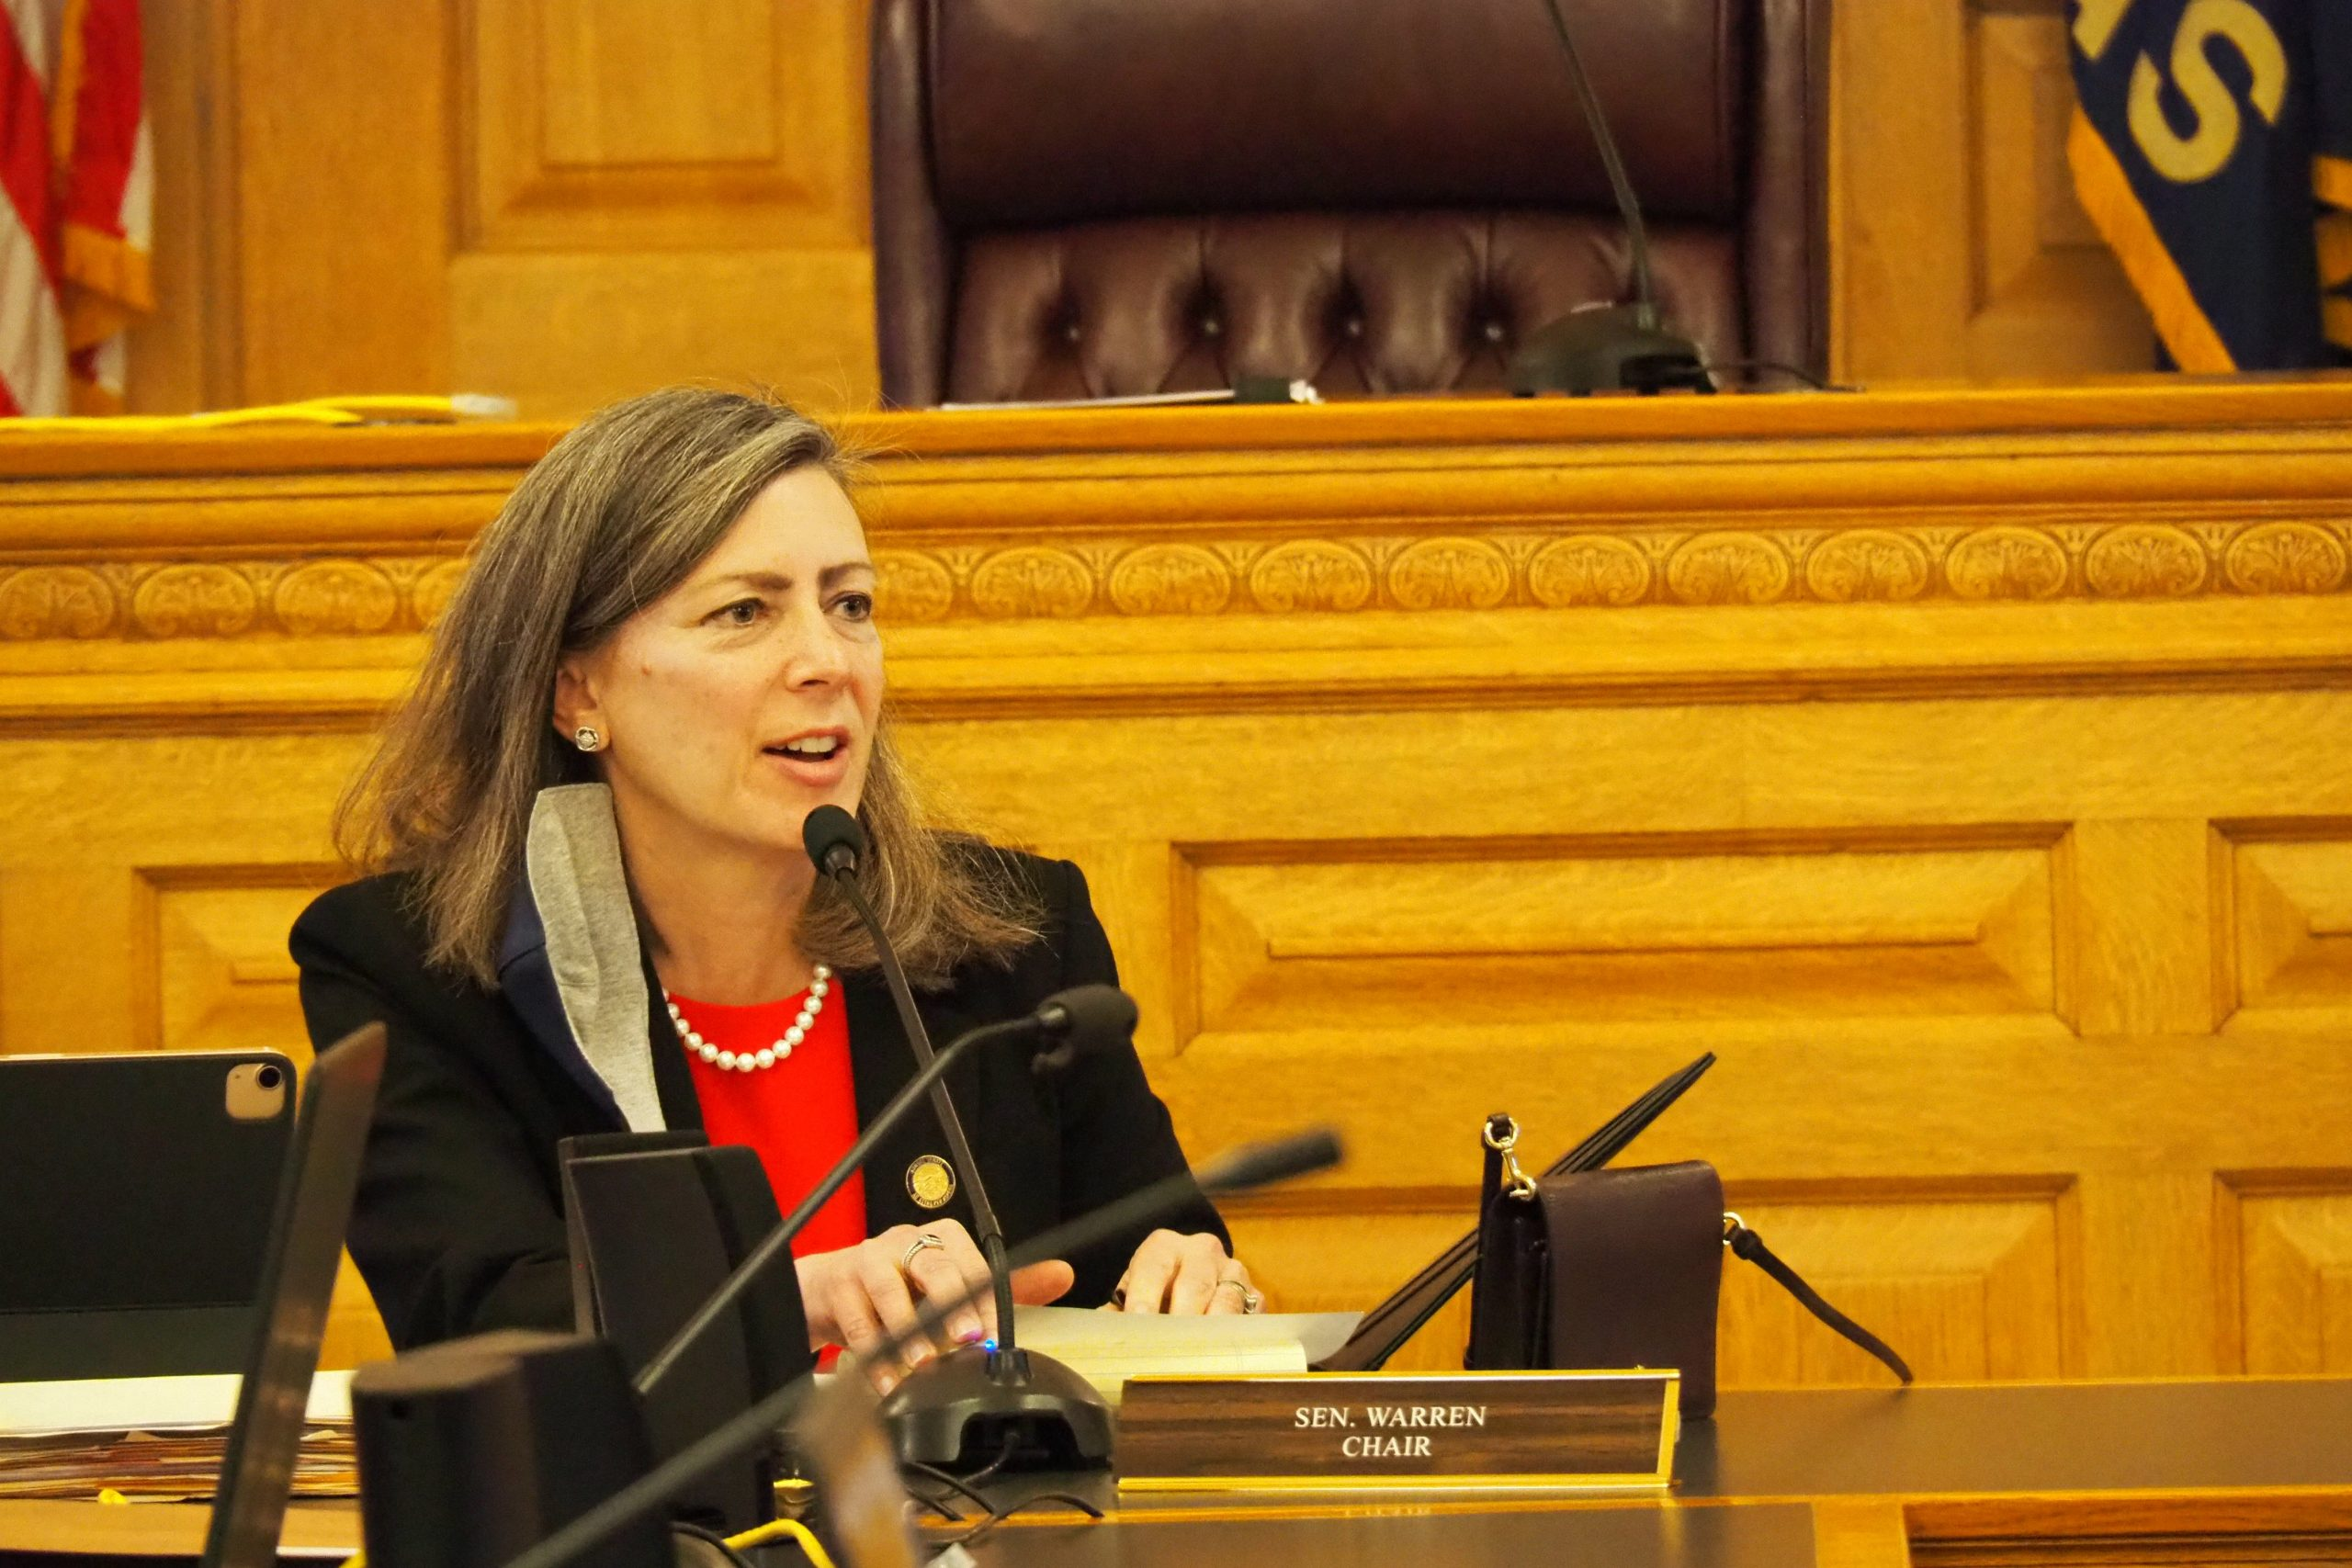 Sen. Kellie Warren, R-Leawood, opened work Wednesday in the Senate Judiciary Committee on a bill overhauling the state's disaster management law to restrain Gov. Laura Kelly and influence how counties, cities, schools respond to disasters such as the COVID-19 pandemic. (Noah Taborda/Kansas Reflector)